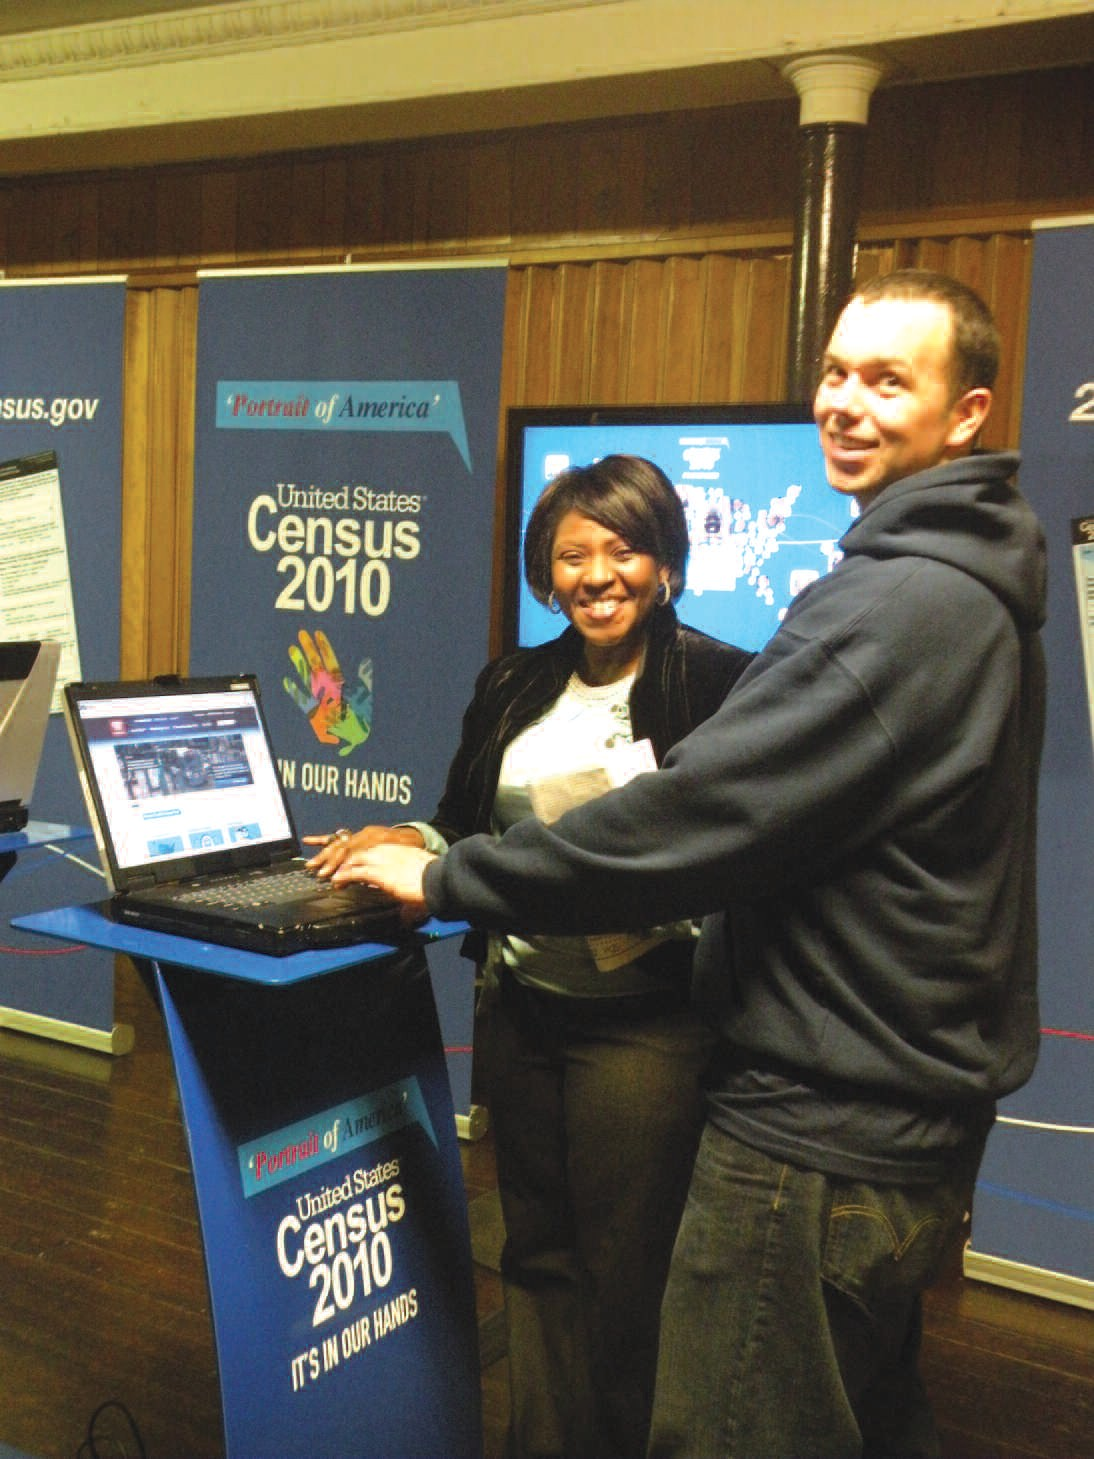 The Census tour features computer kiosks for the guests to experience how easy the registration process can be.